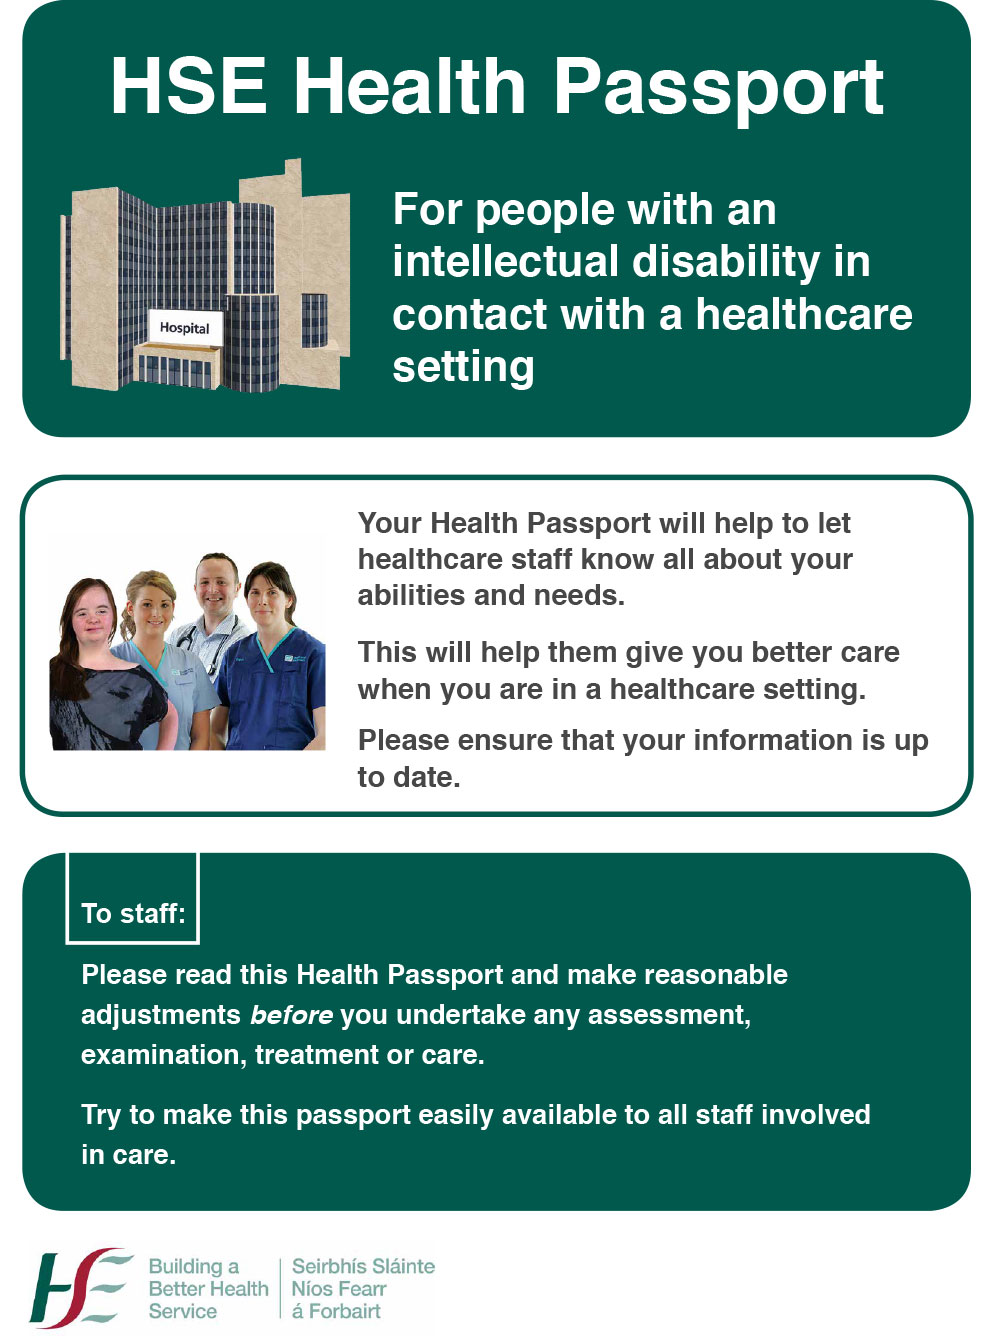 HSE Health Passport – For people with an intellectual disability in contact with a healthcare setting